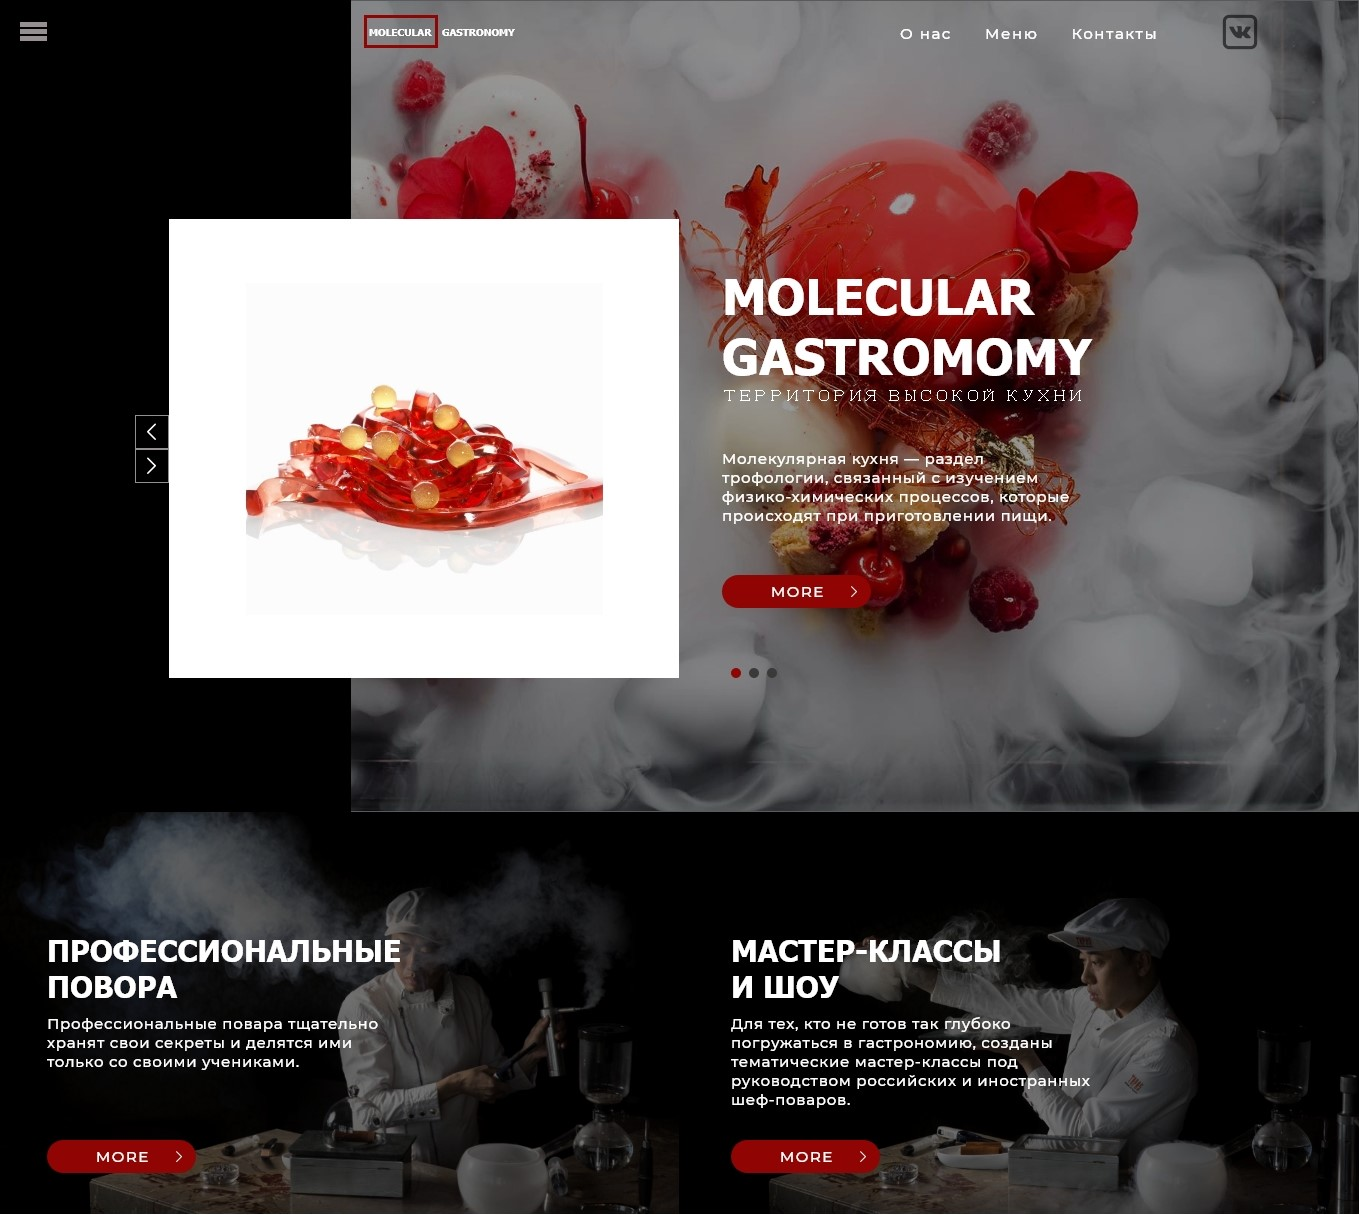 aim of molecular gastronomy media essay First, i will define molecular gastronomy, because there is still much confusion in the media about the true meaning of this term, in part because of mistakes nicholas kurti and i made when we created the discipline in 1988.